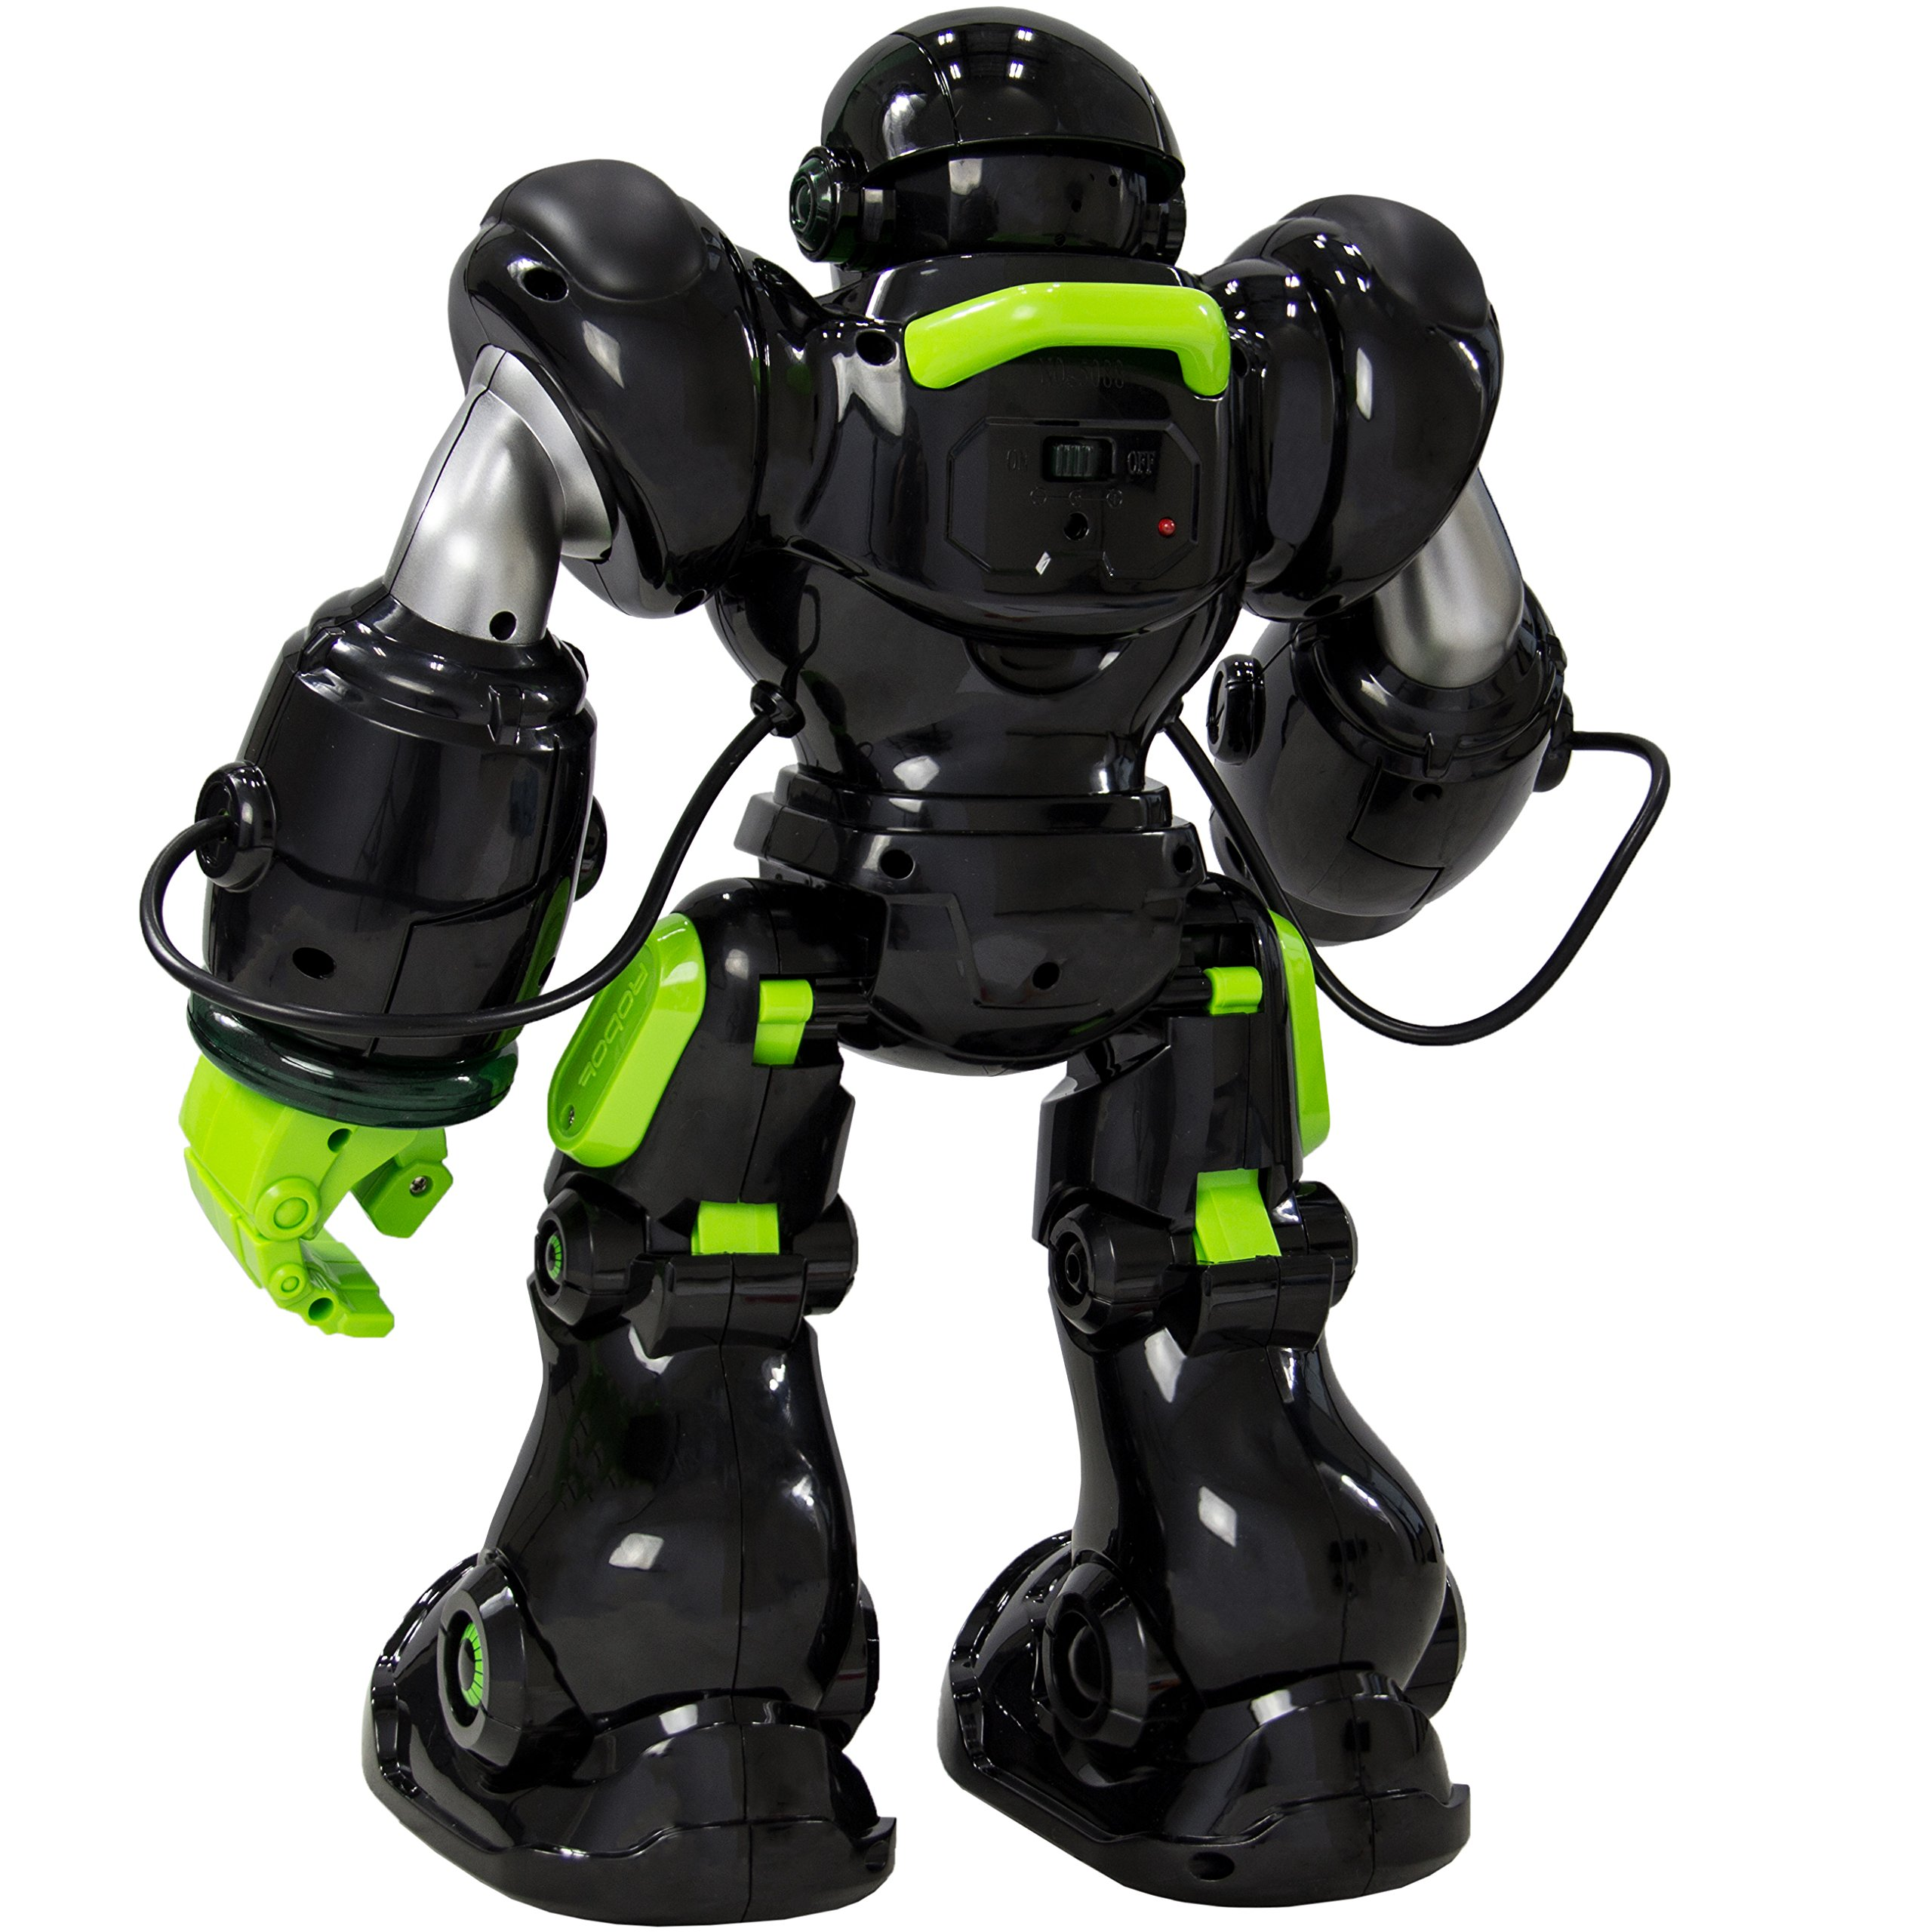 Best Choice Products Intelligent Remote Control RC Robot Talking Walking Shooting Light & Music Action Toys by Best Choice Products (Image #3)